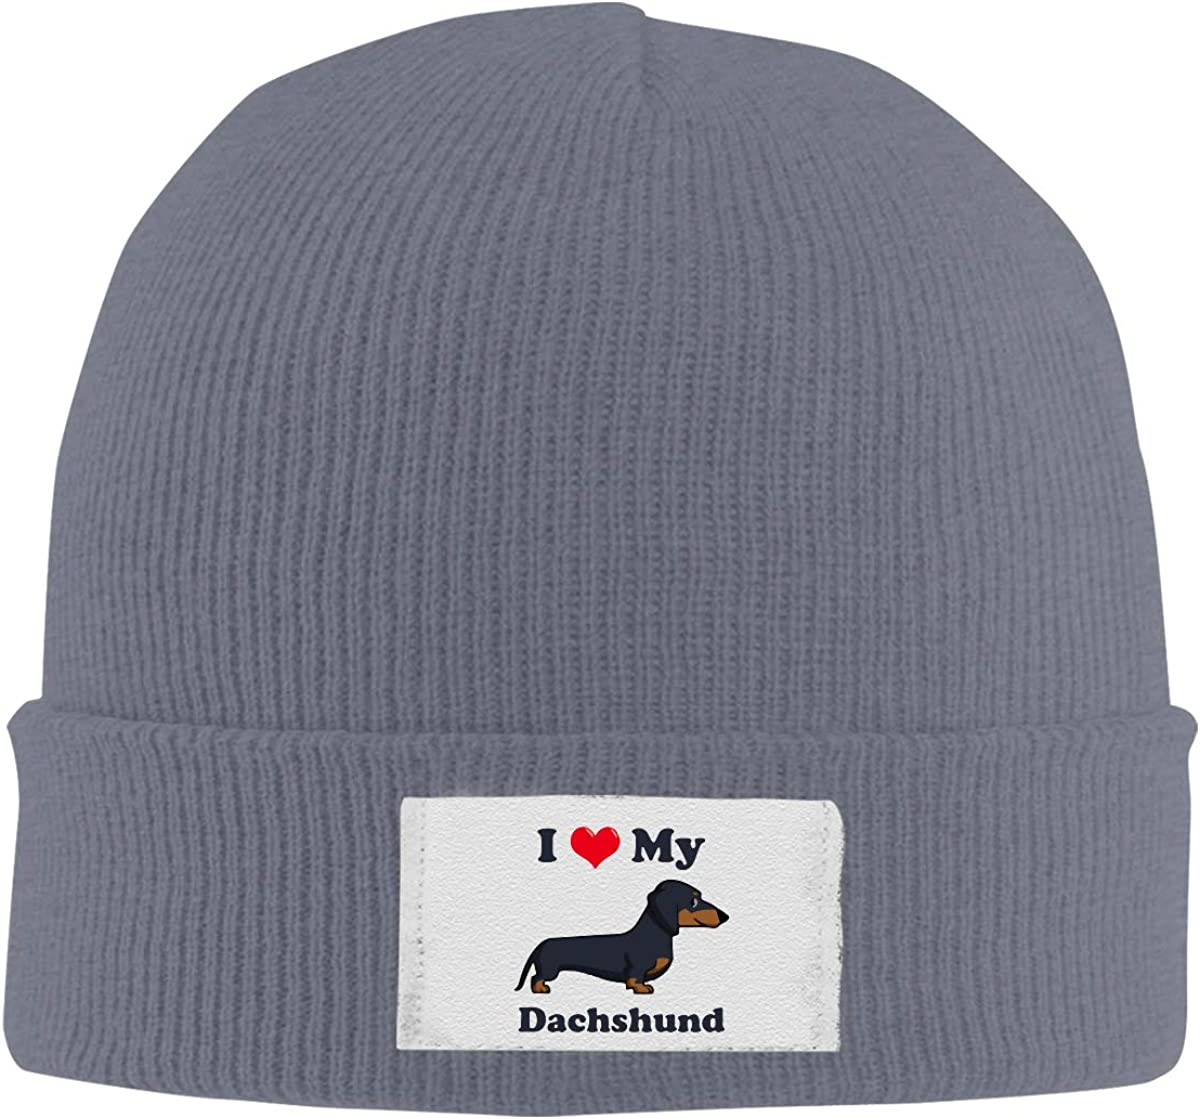 Skull Caps I Love My Dachshund Winter Warm Knit Hats Stretchy Cuff Beanie Hat Black